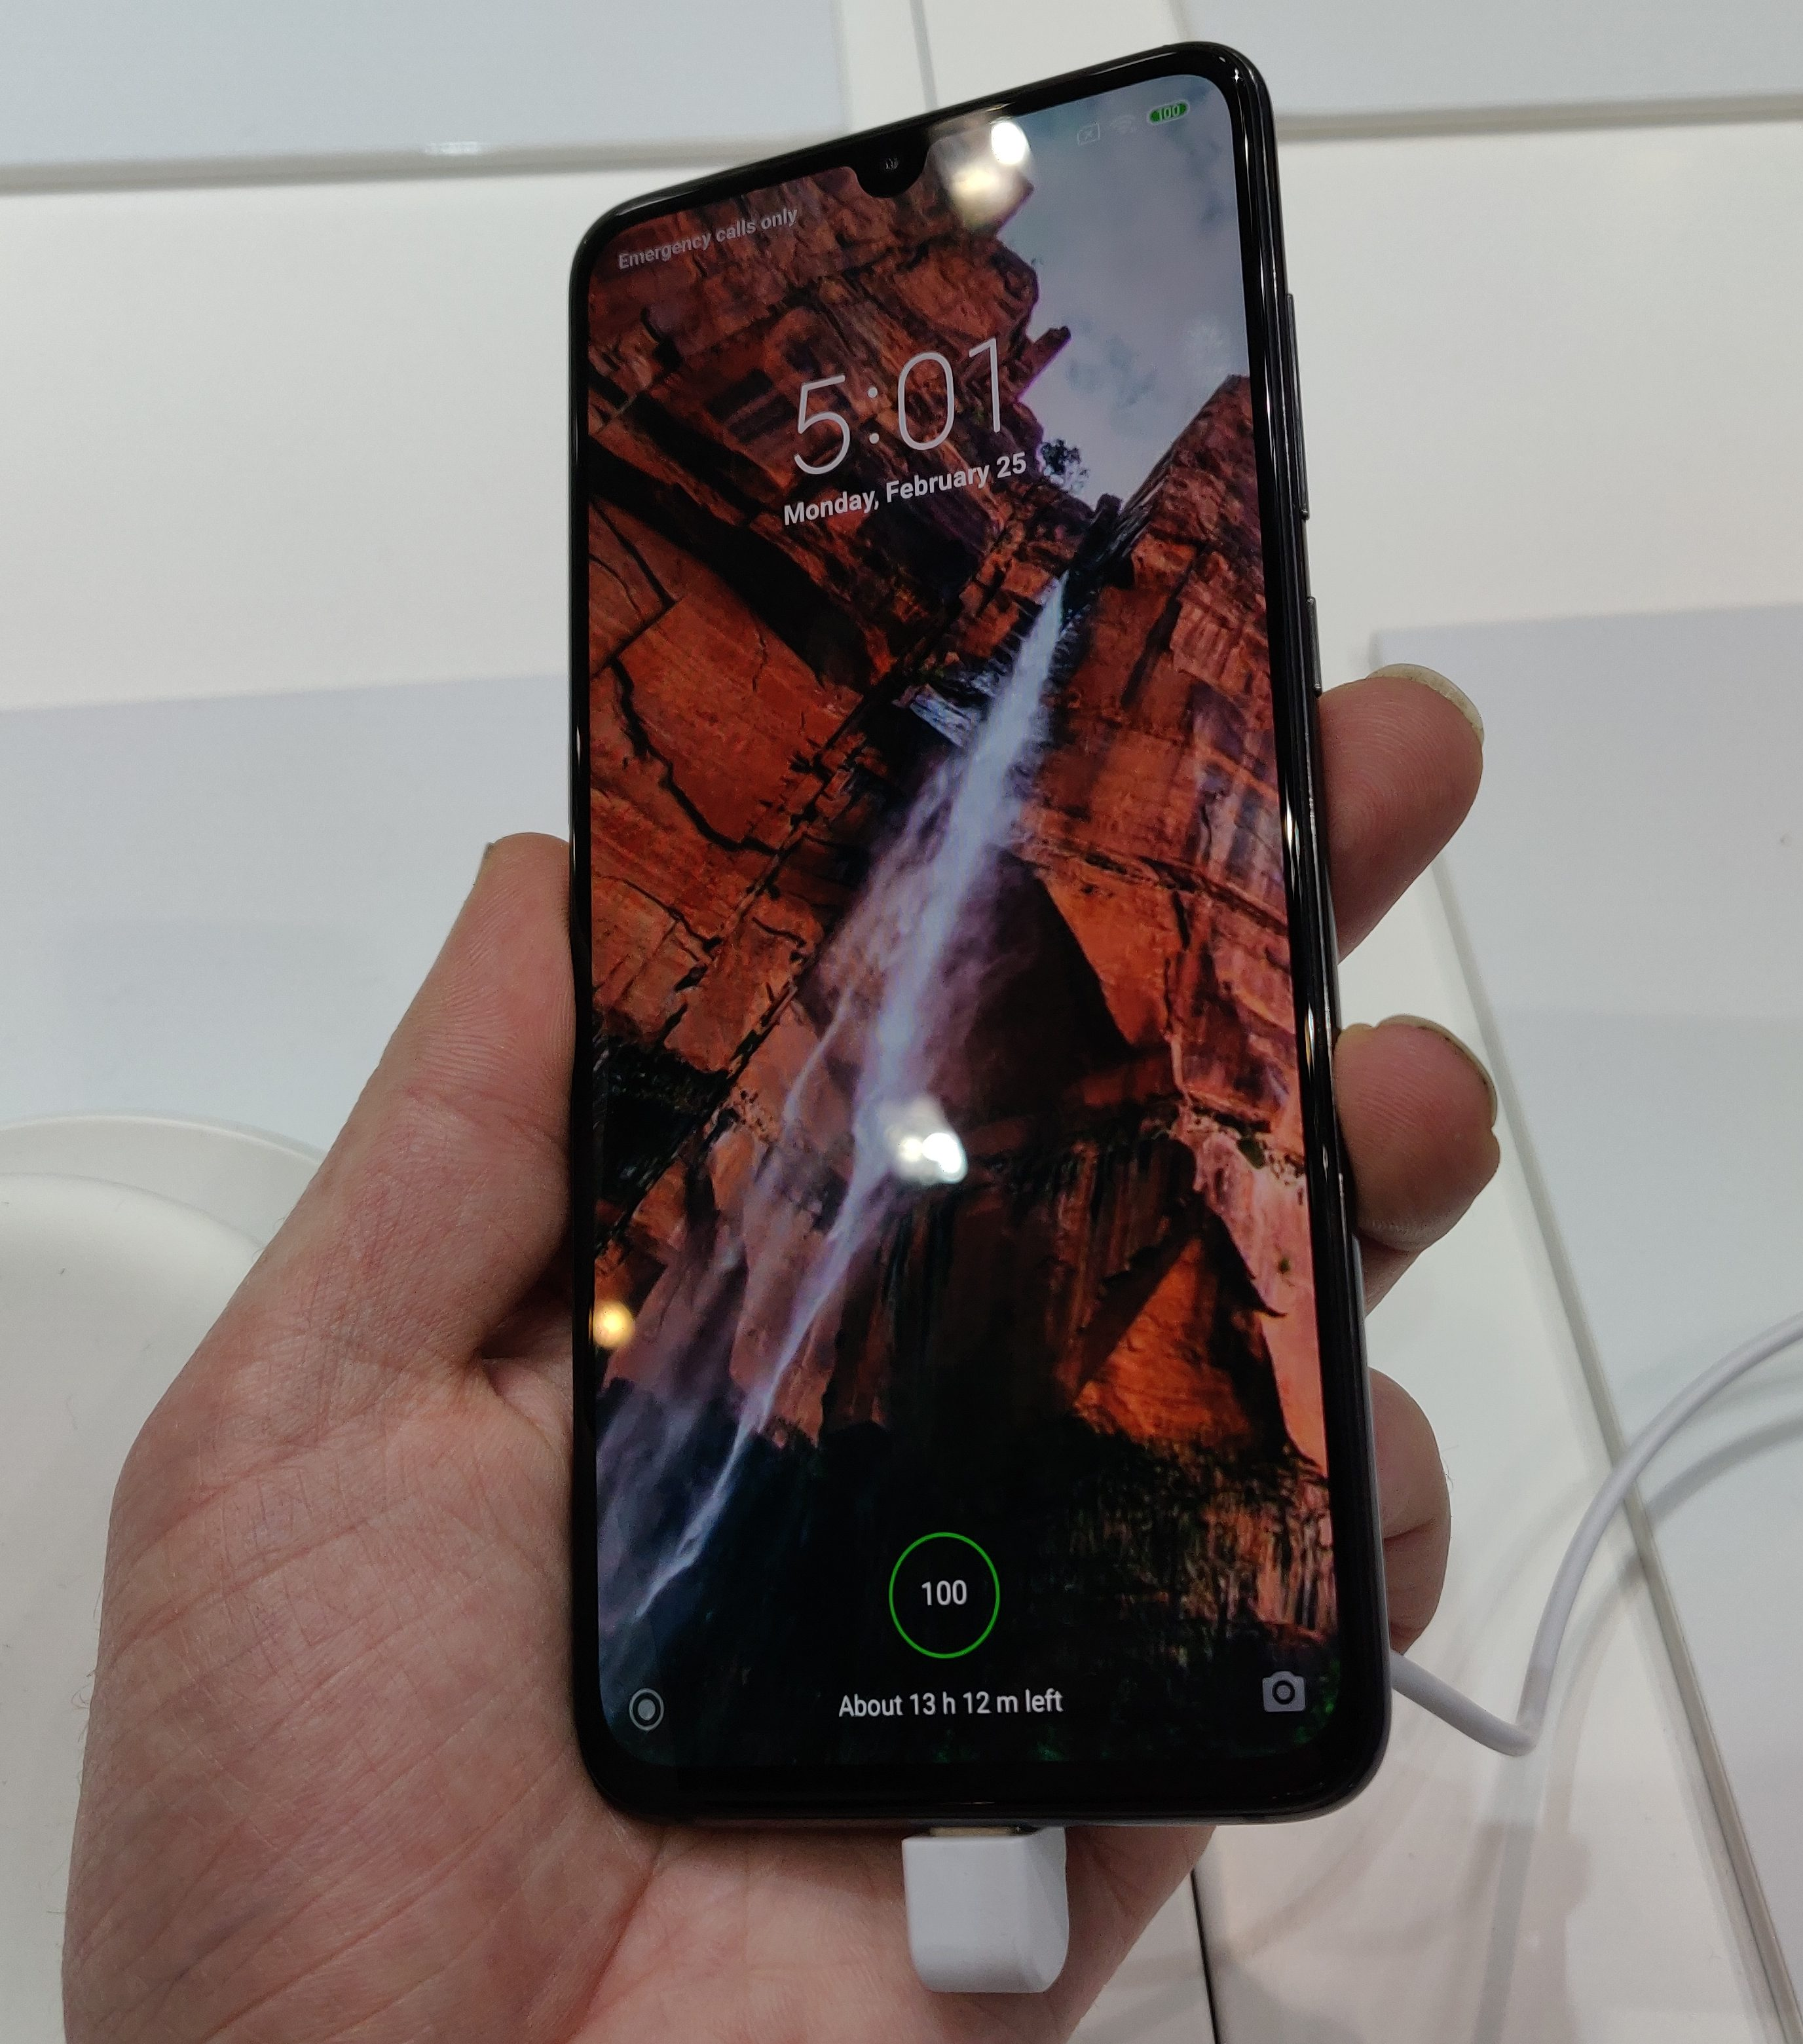 Xiaomi Mi9 now available to buy on Vodafone  - Coolsmartphone